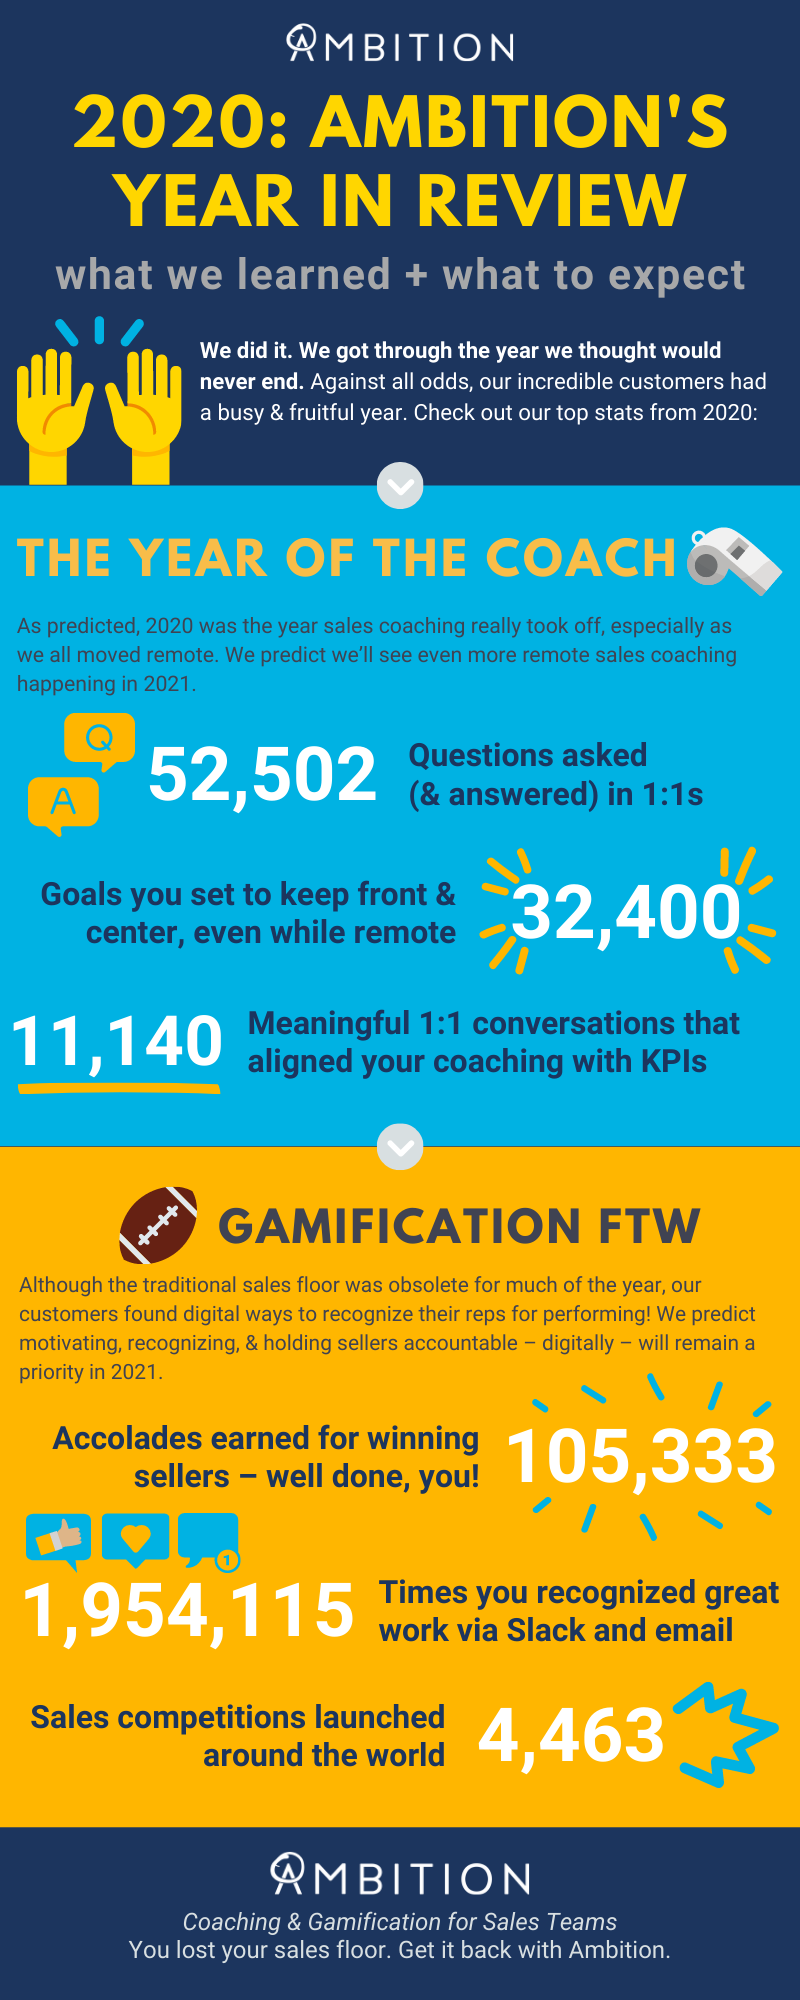 2020: Ambition's Year in Review Infographic